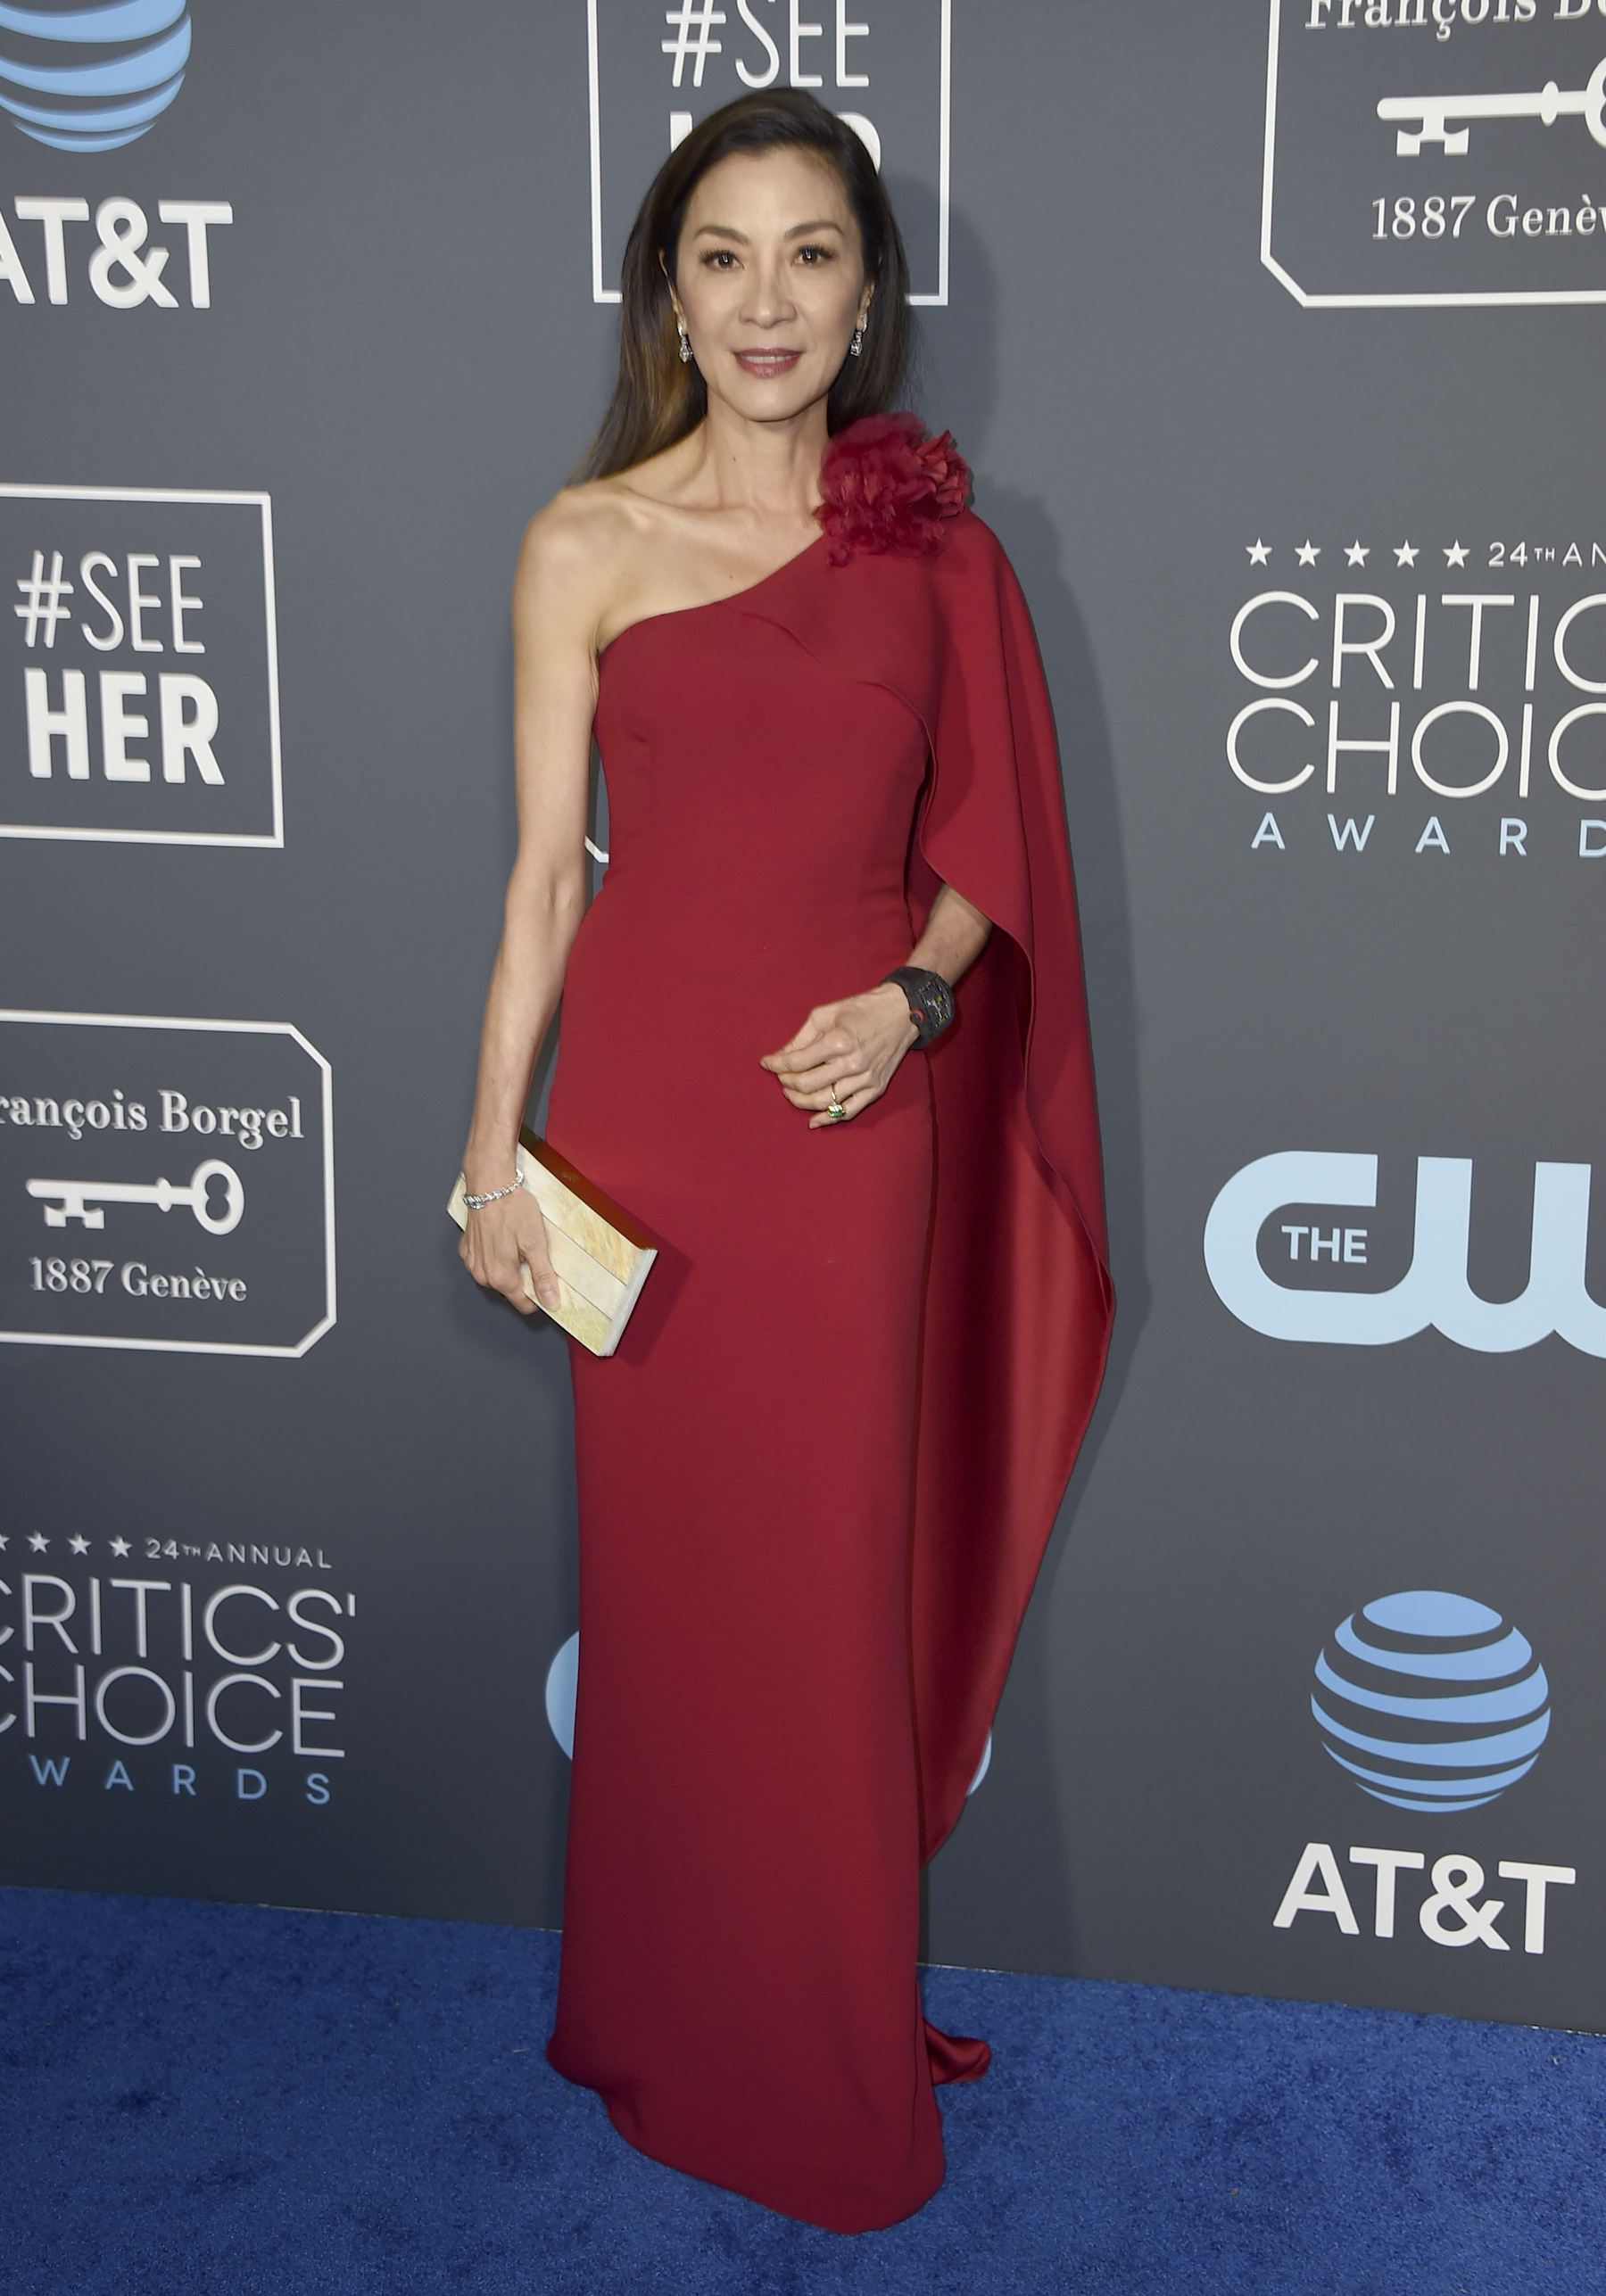 <div class='meta'><div class='origin-logo' data-origin='AP'></div><span class='caption-text' data-credit='Jordan Strauss/Invision/AP'>Michelle Yeoh arrives at the 24th annual Critics' Choice Awards on Sunday, Jan. 13, 2019, at the Barker Hangar in Santa Monica, Calif.</span></div>